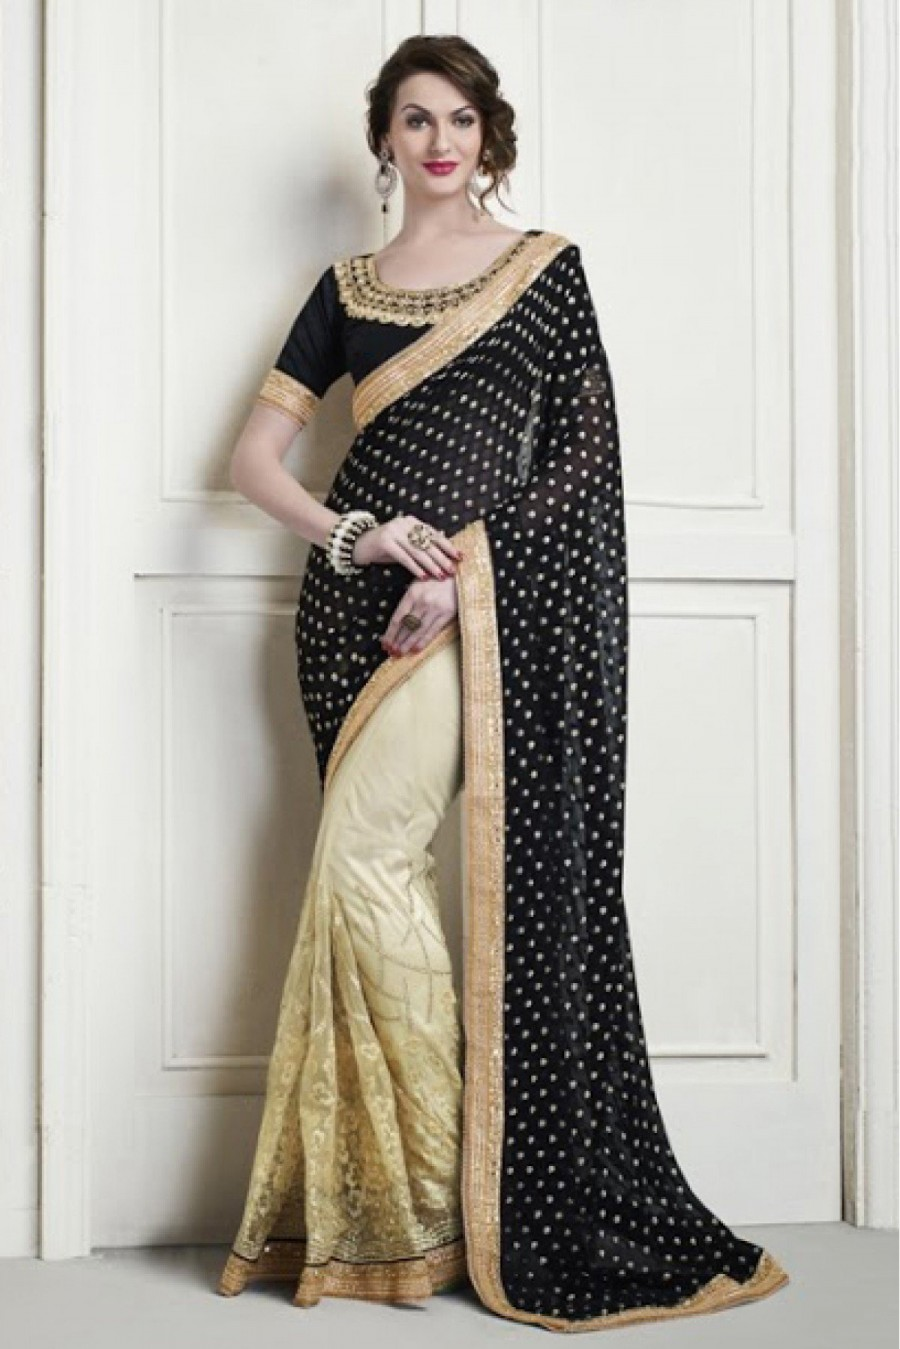 ef5a4bb9b8 Buy Net and Viscose Party Wear Designer Saree in Black and Cream Colour  Online